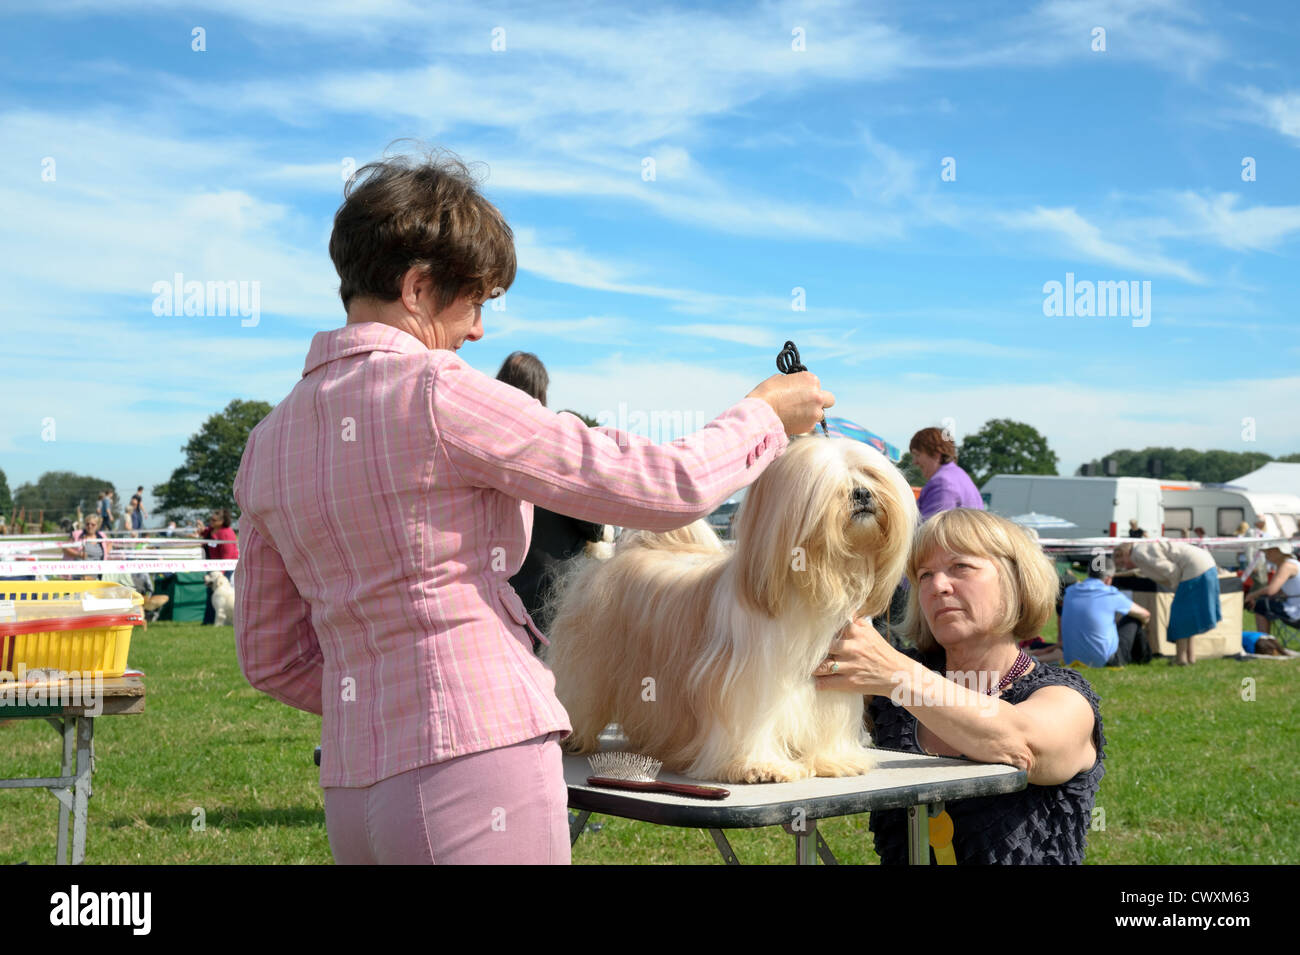 Dog show judging at Kington Show, Herefordshire, UK. Woman judge examining dog standing on a table. - Stock Image